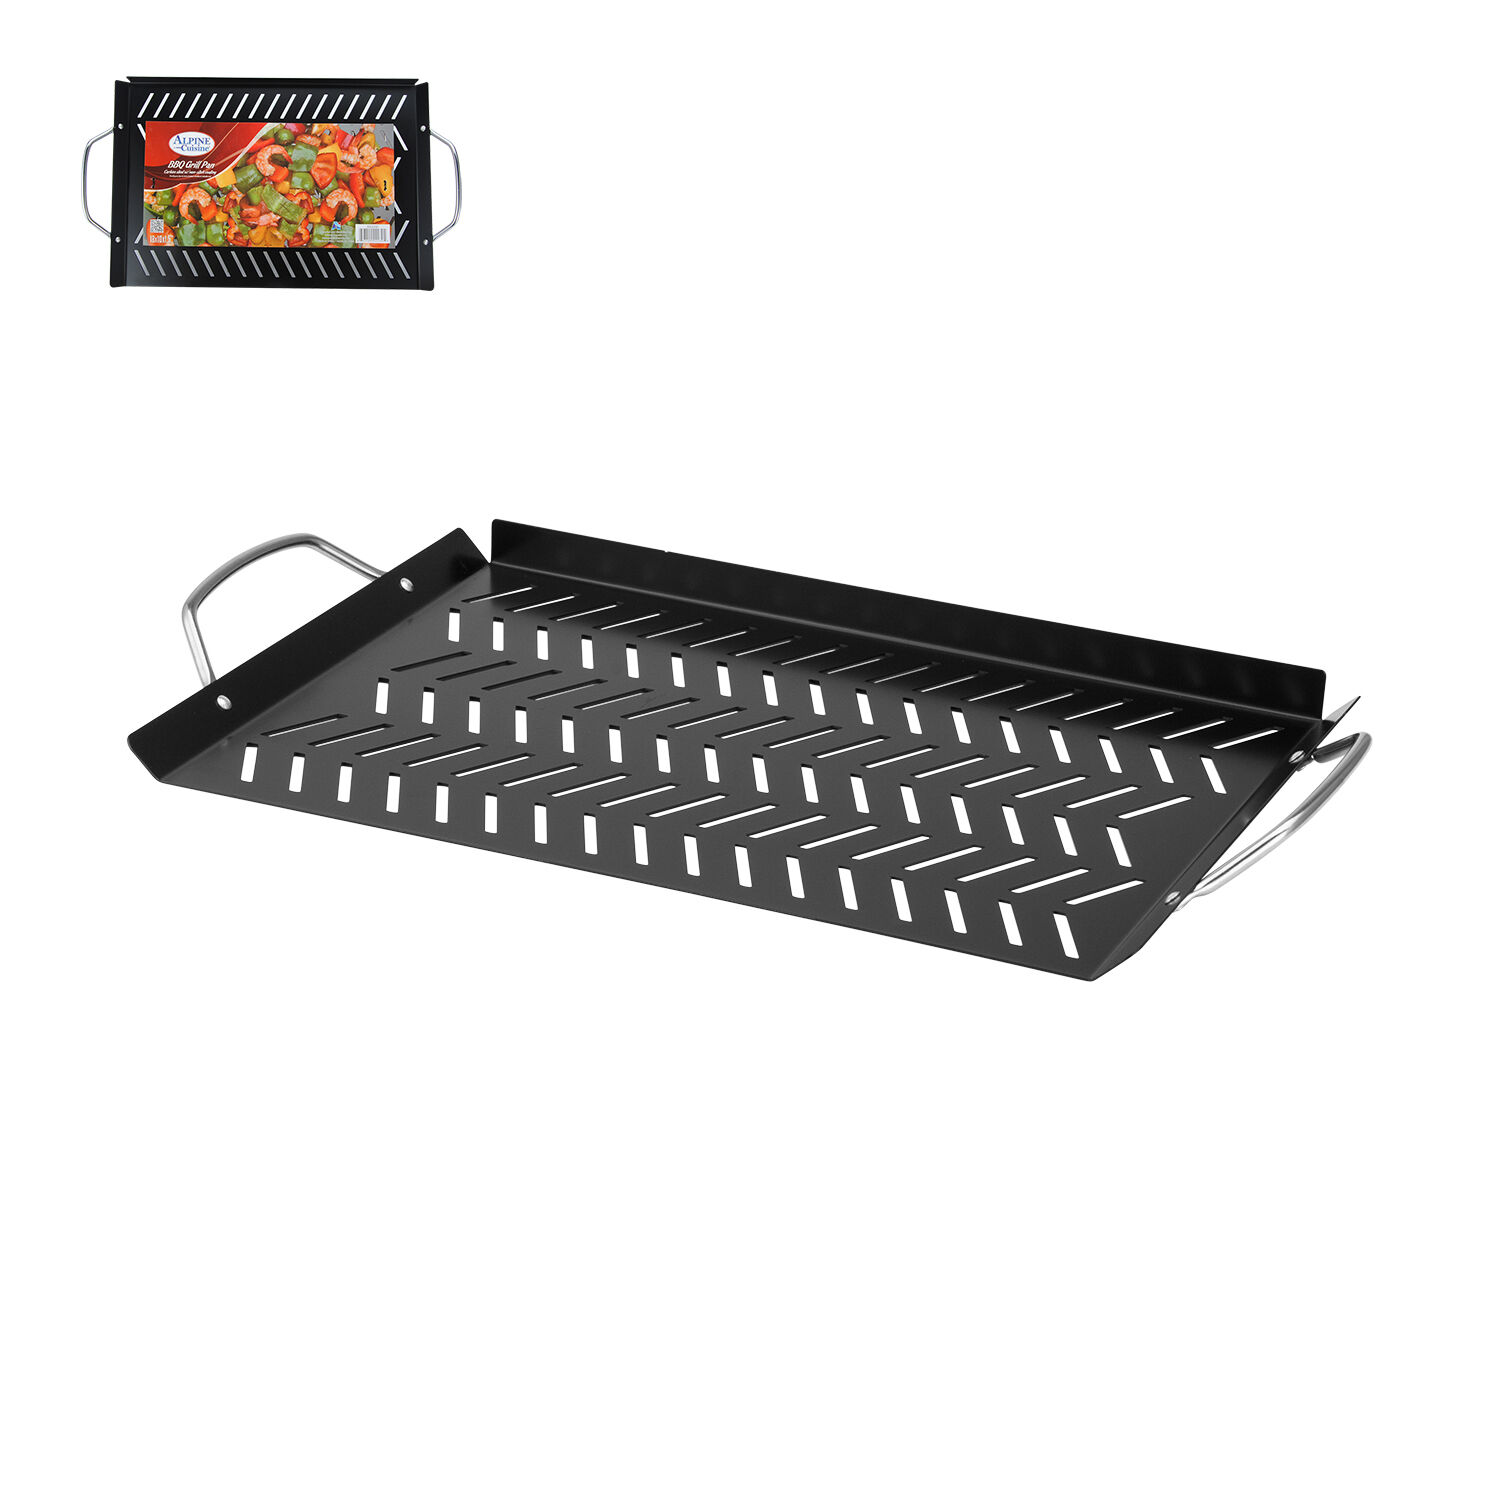 Alpine BBQ Grill Topper Pan Non-Stick Carbon Steel Outdoor G